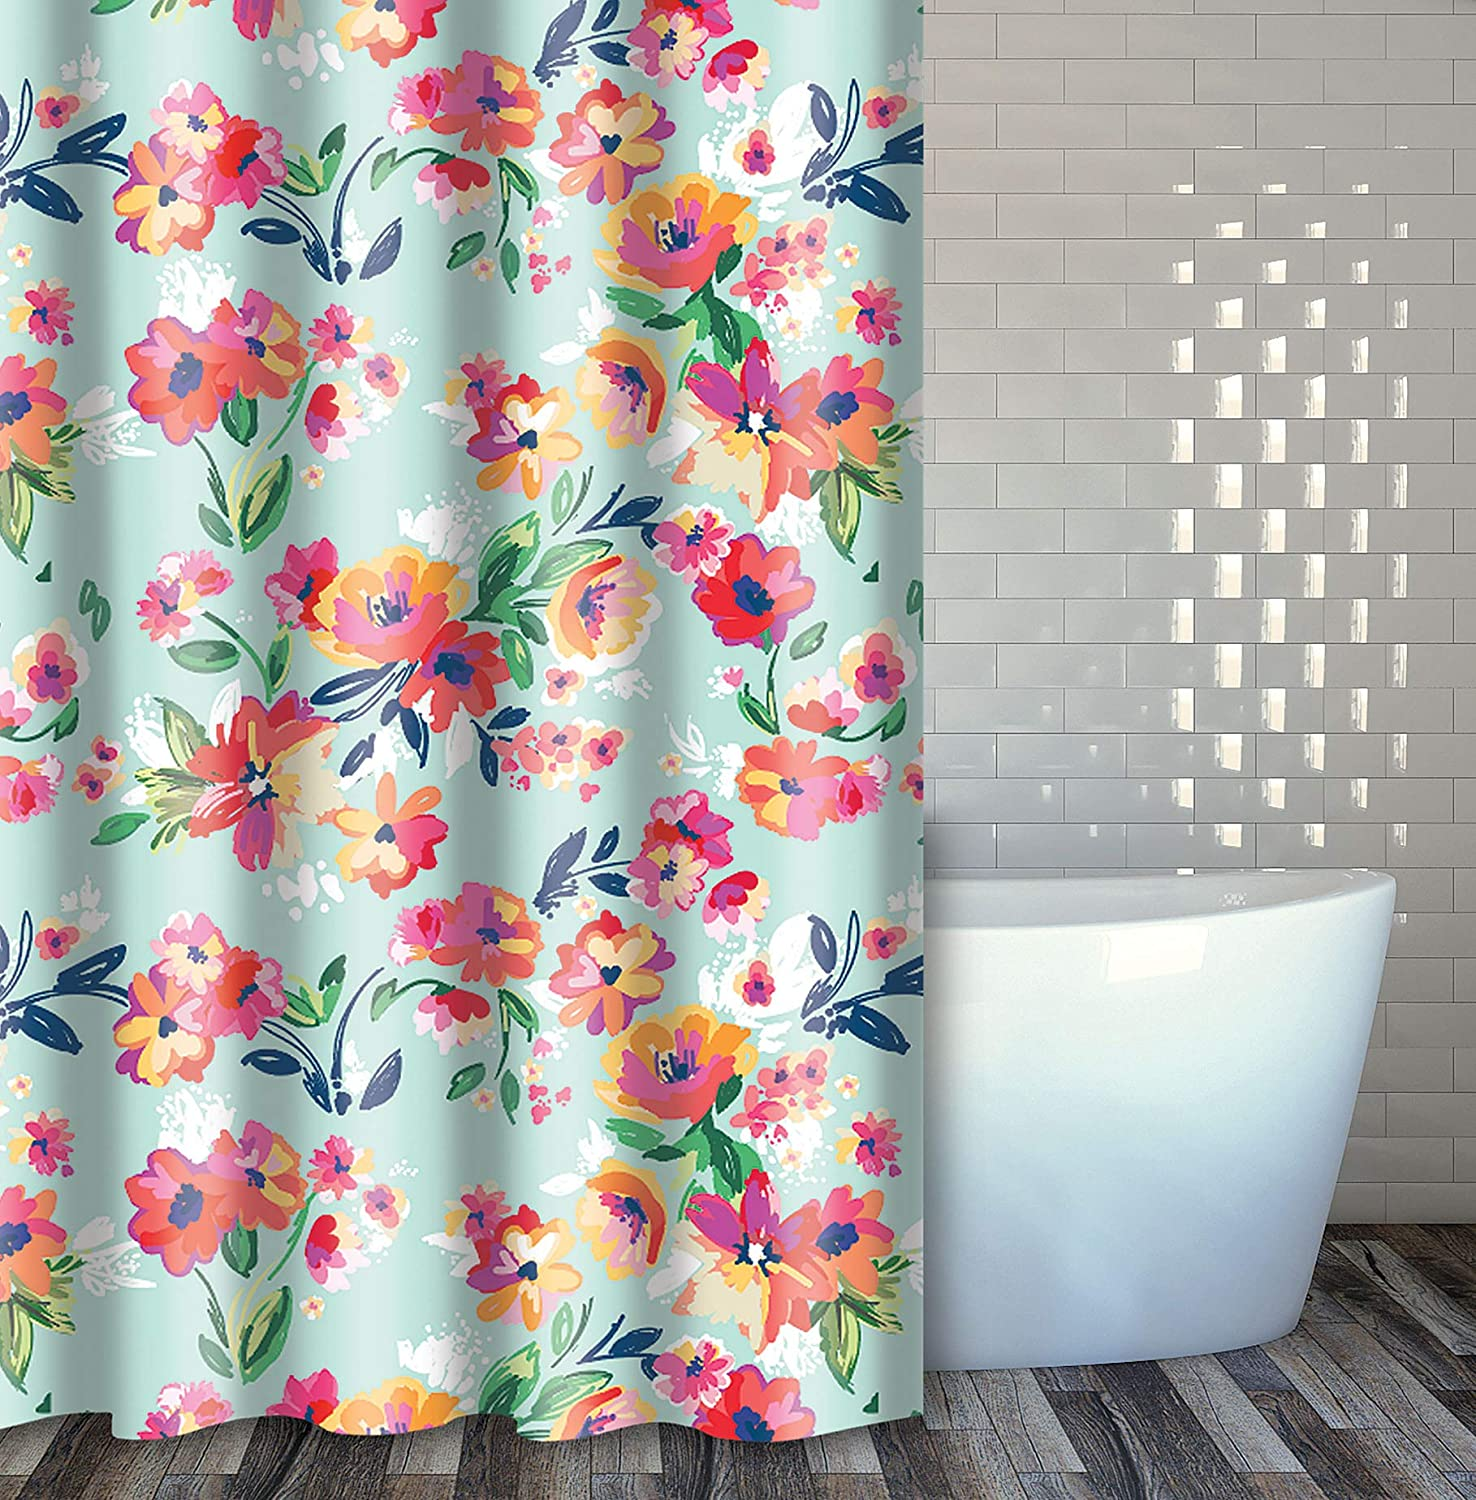 """Home Expressions Durable Waterproof Peva Shower Curtain 70""""x72"""" (Floral Design)"""